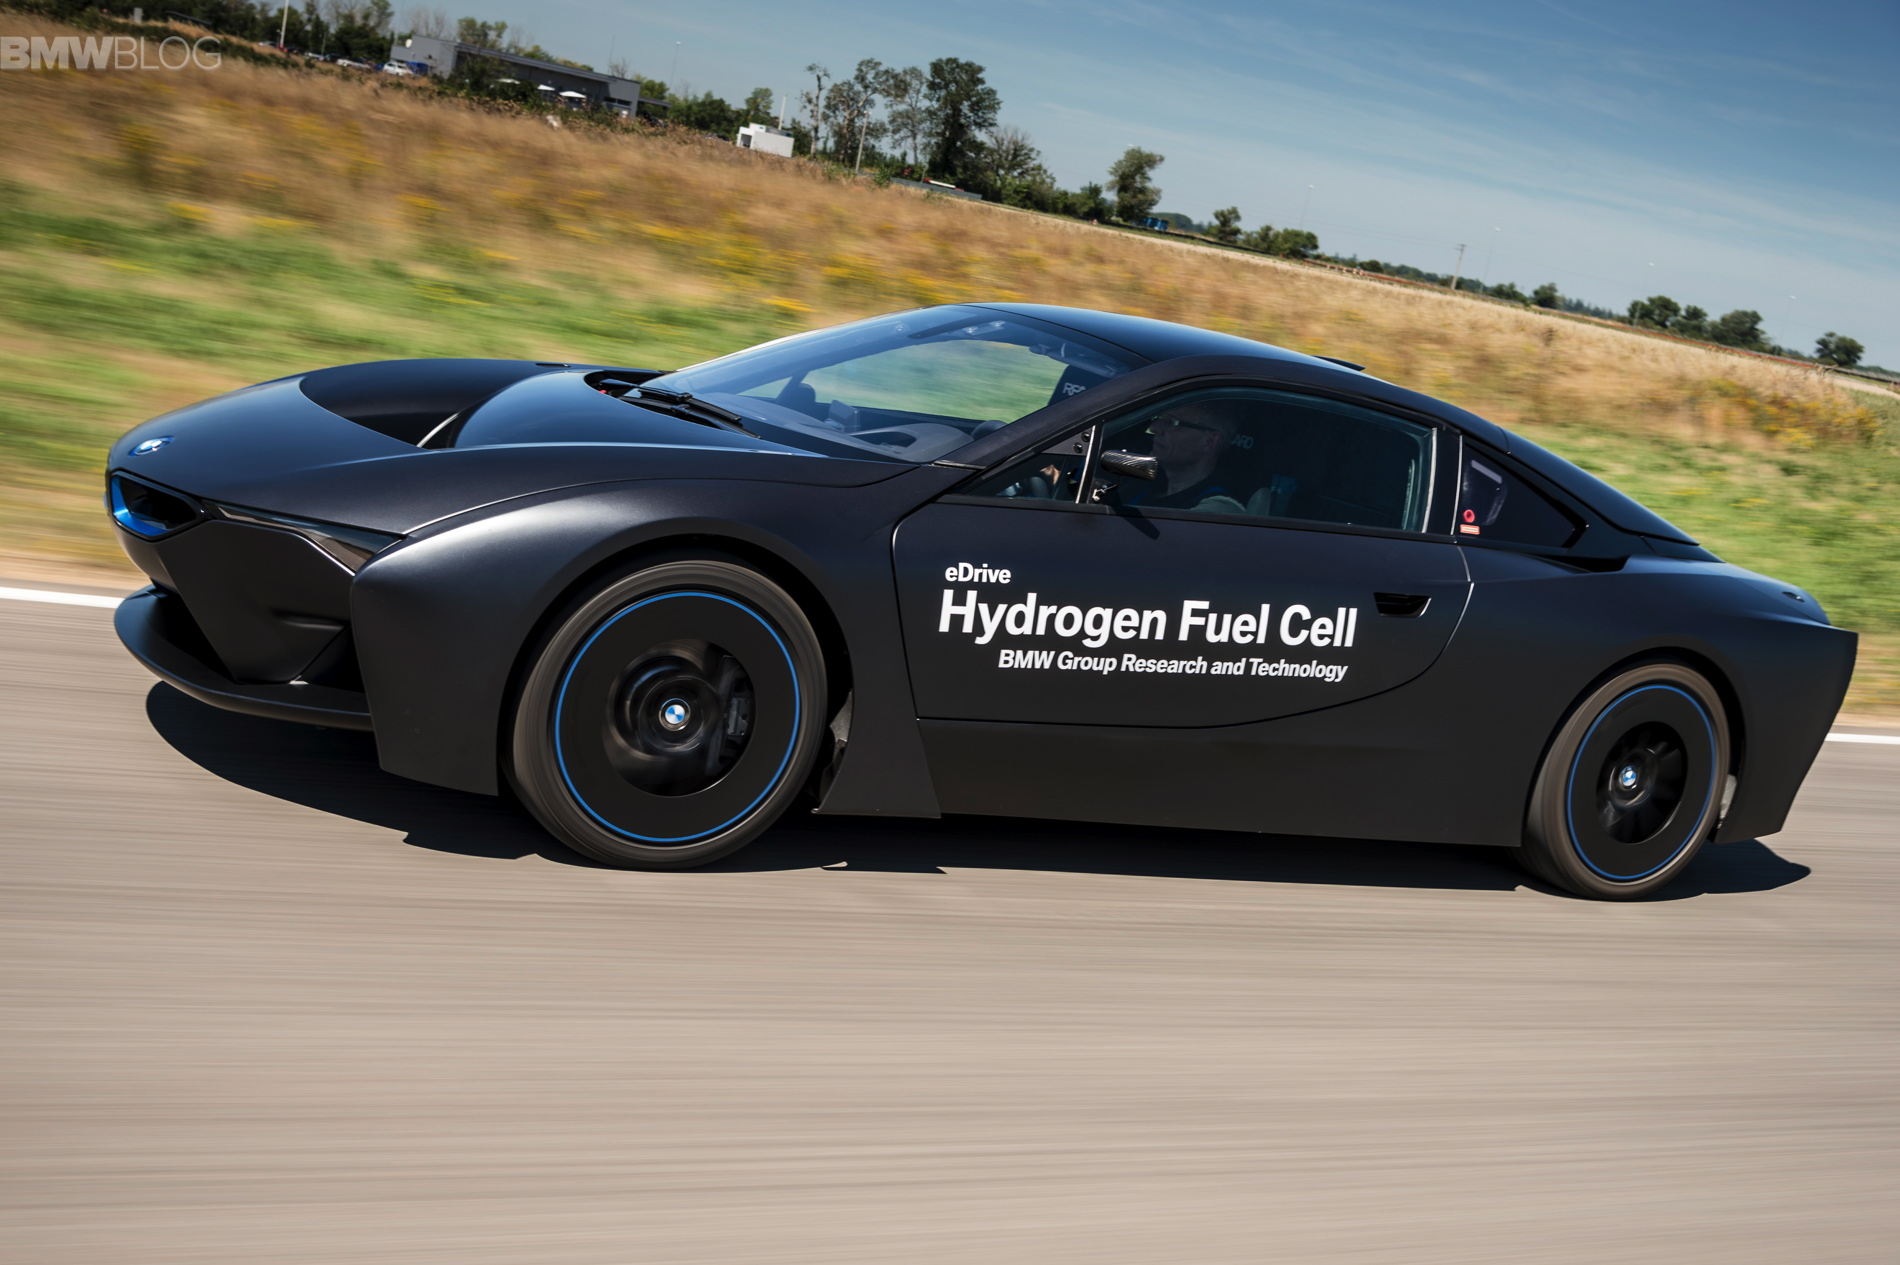 BMW i8 hydrogen fuel cell images 06